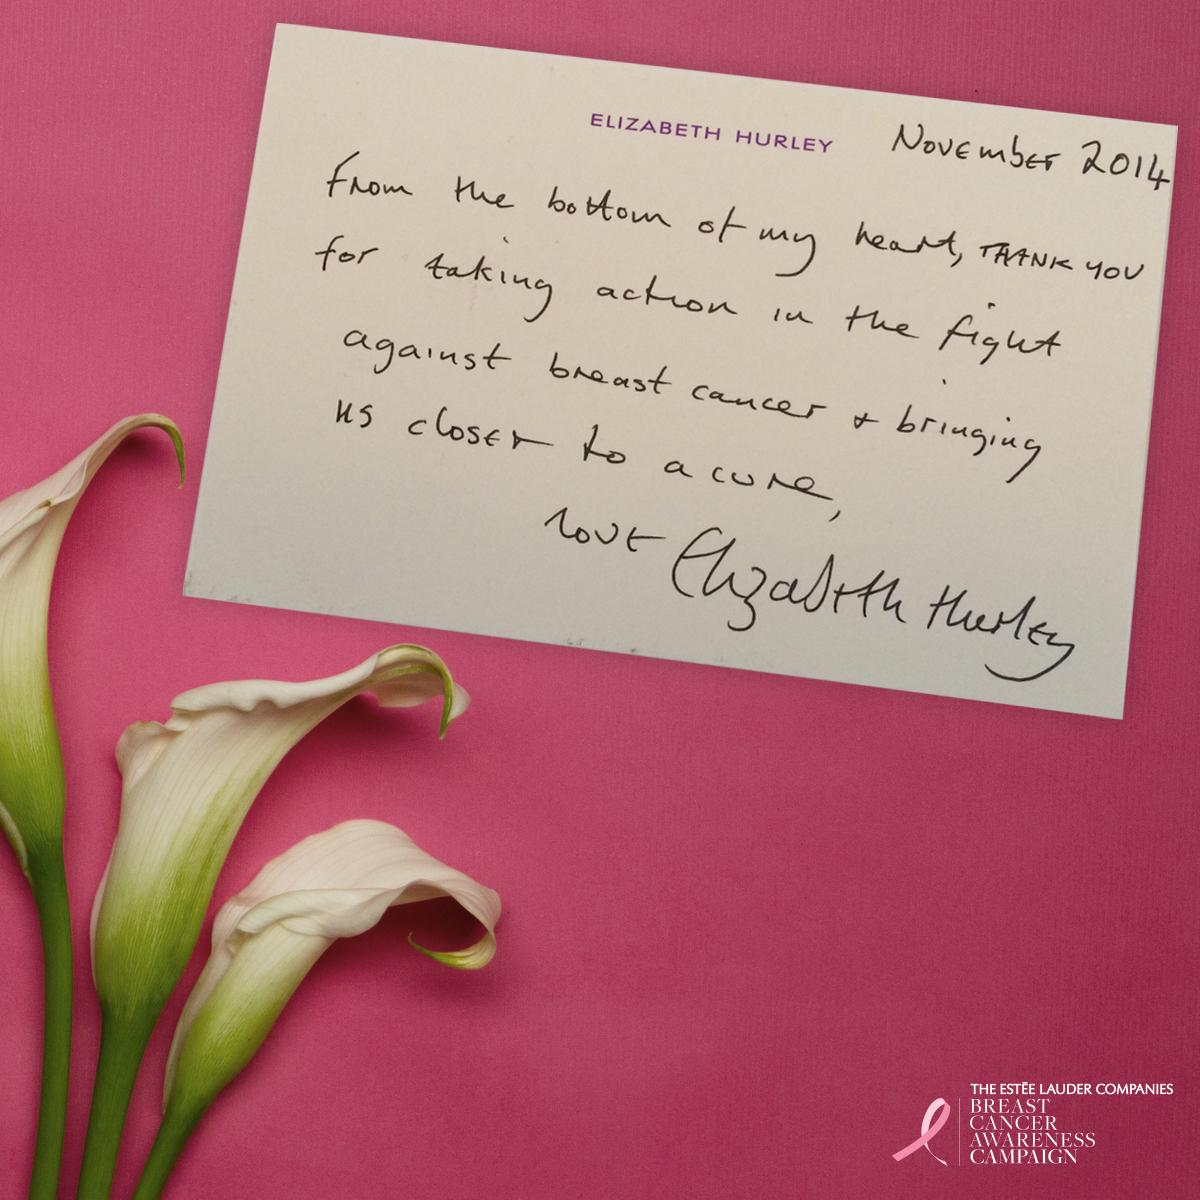 RT @BCAcampaign: A note of thanks from our Global Ambassador @ElizabethHurley. #BCAstrength http://t.co/xLEpDdvyH9